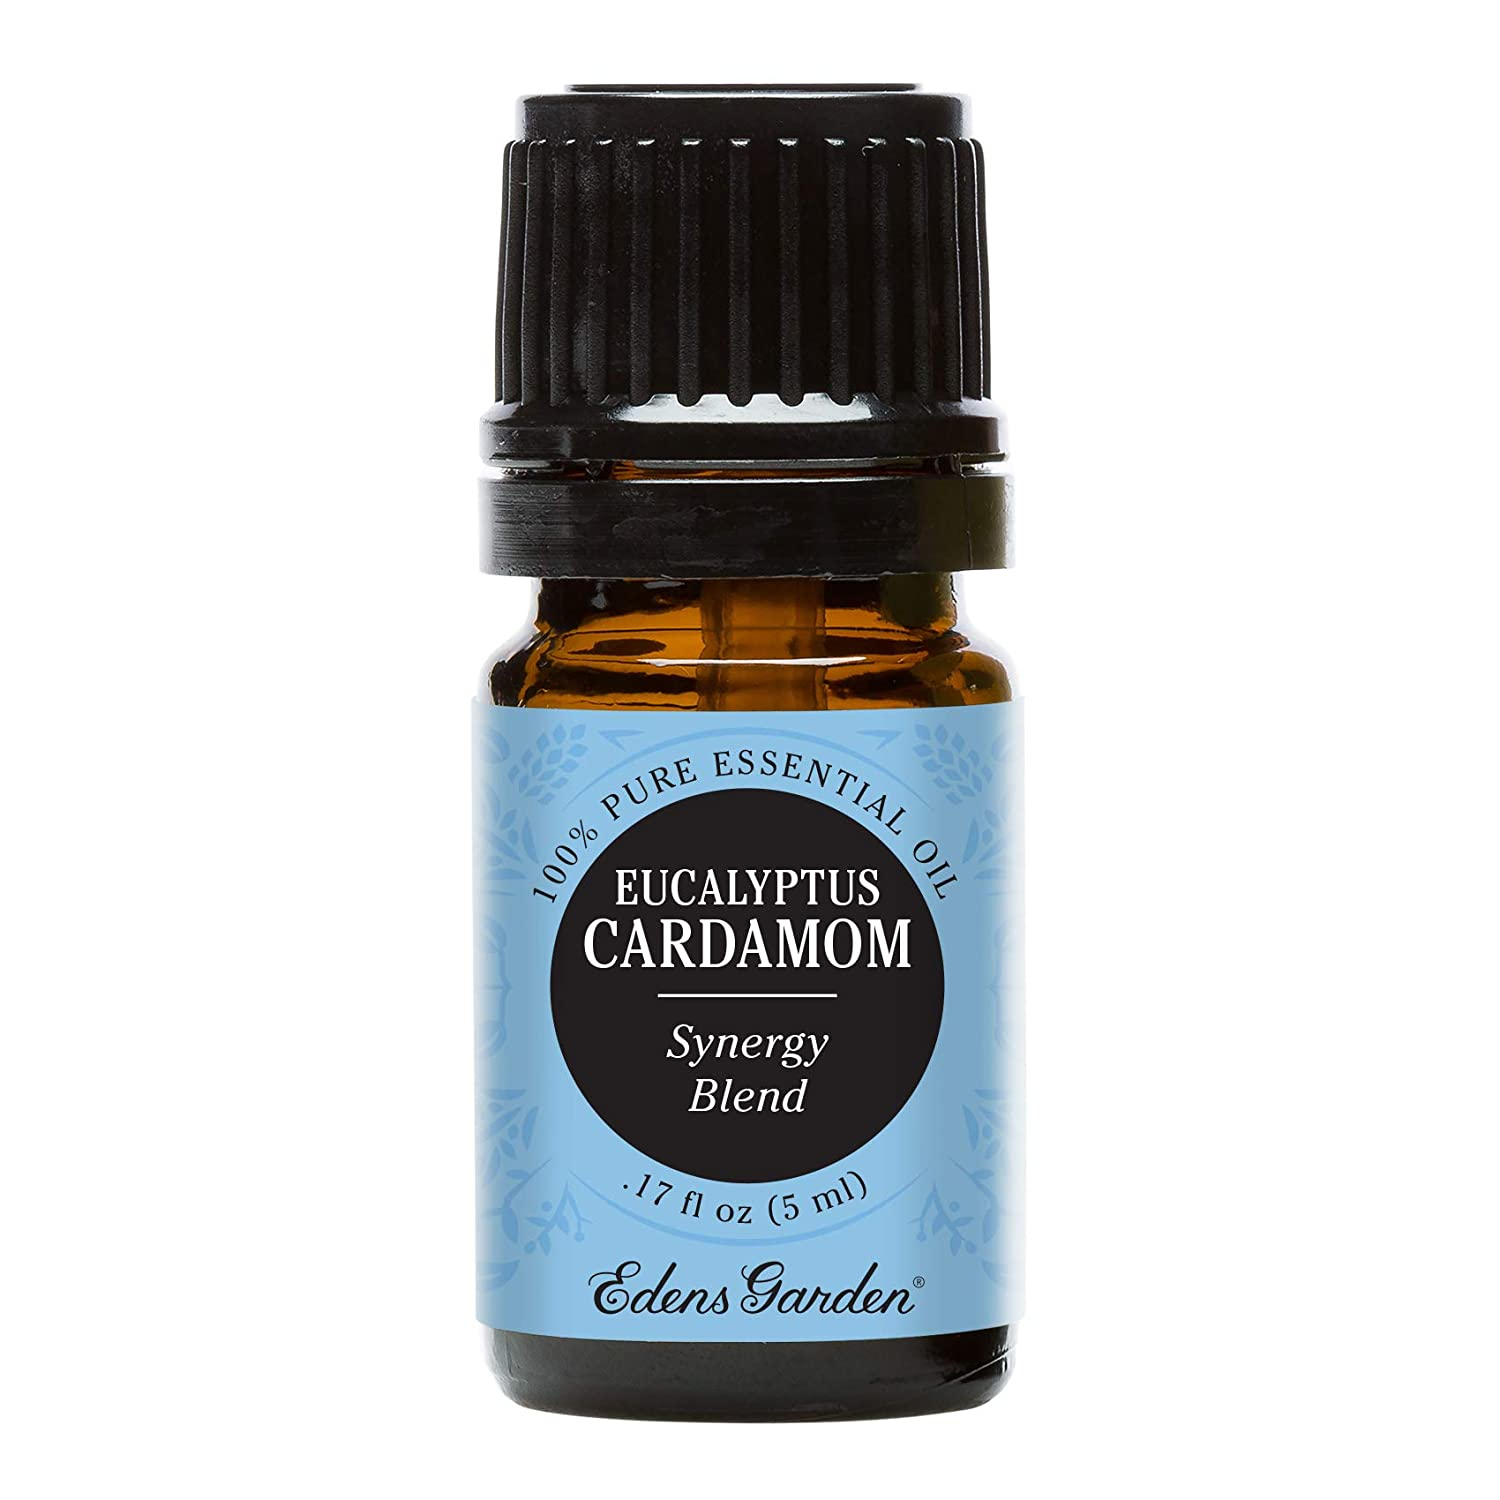 Edens Garden Eucalyptus Cardamom Essential Oil Synergy Blend, 100% Pure Therapeutic Grade (Highest Quality Aromatherapy Oils- Congestion & Cold Flu), 5 ml